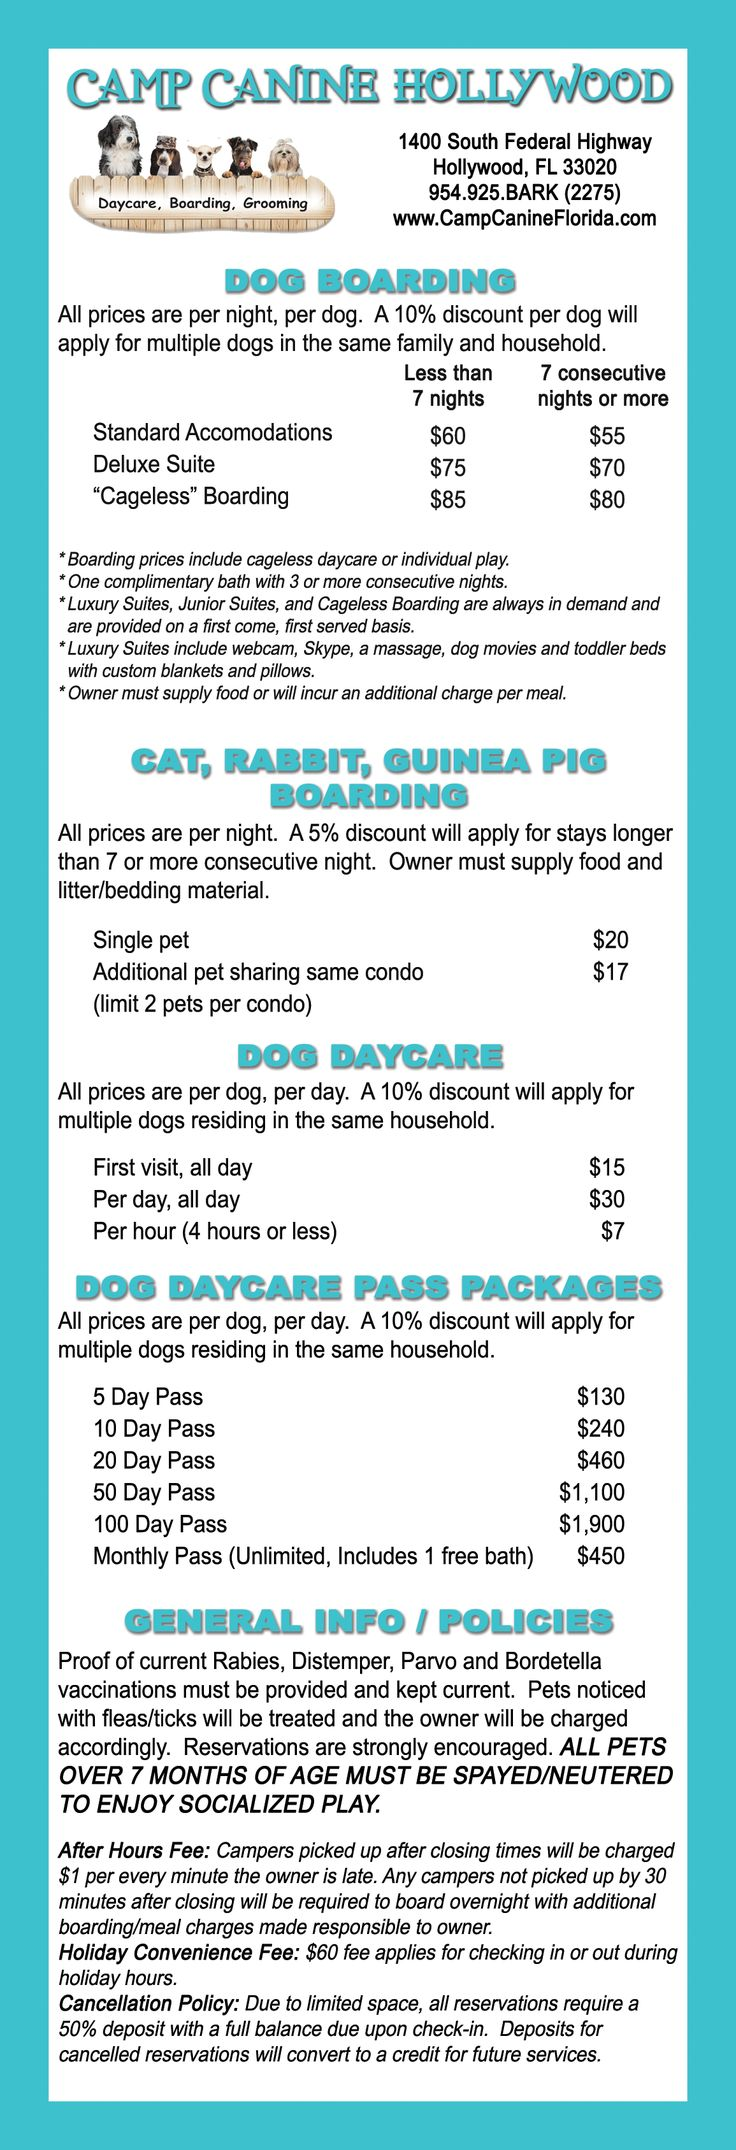 Camp Canine Doggie Daycare, Spa, Boca Raton, Fort Lauderdale, Hollywood, Florida provides dog lodging, professional dog grooming, fully supervised cageless daycare for dogs.